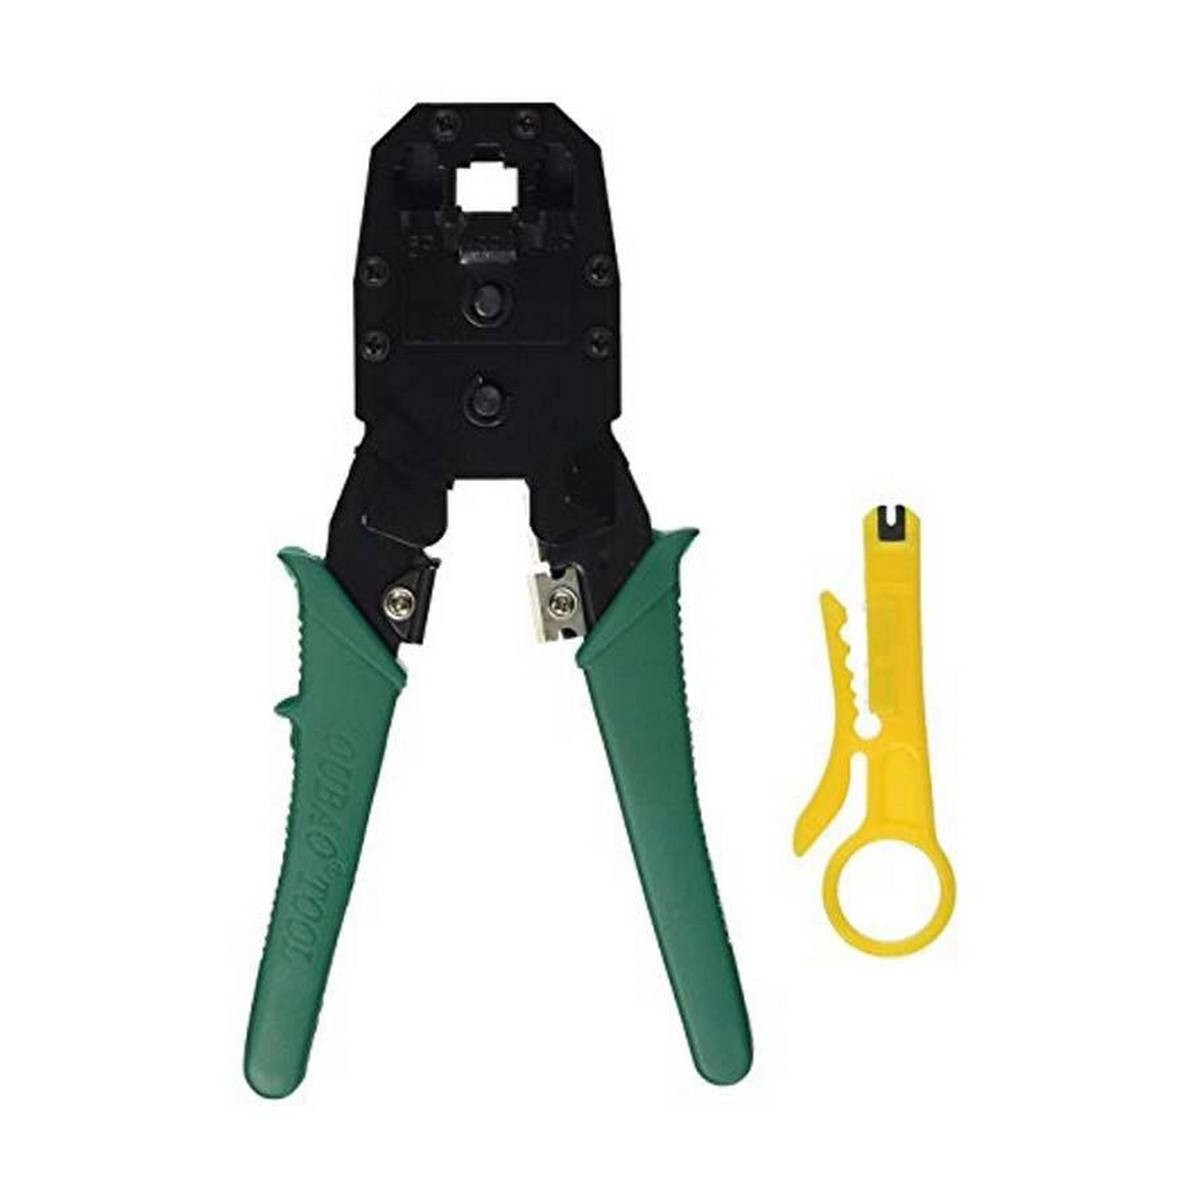 Pack of 2 - RJ45 - Networking Crimping Tool with RJ45 Connectors - 100 Pcs